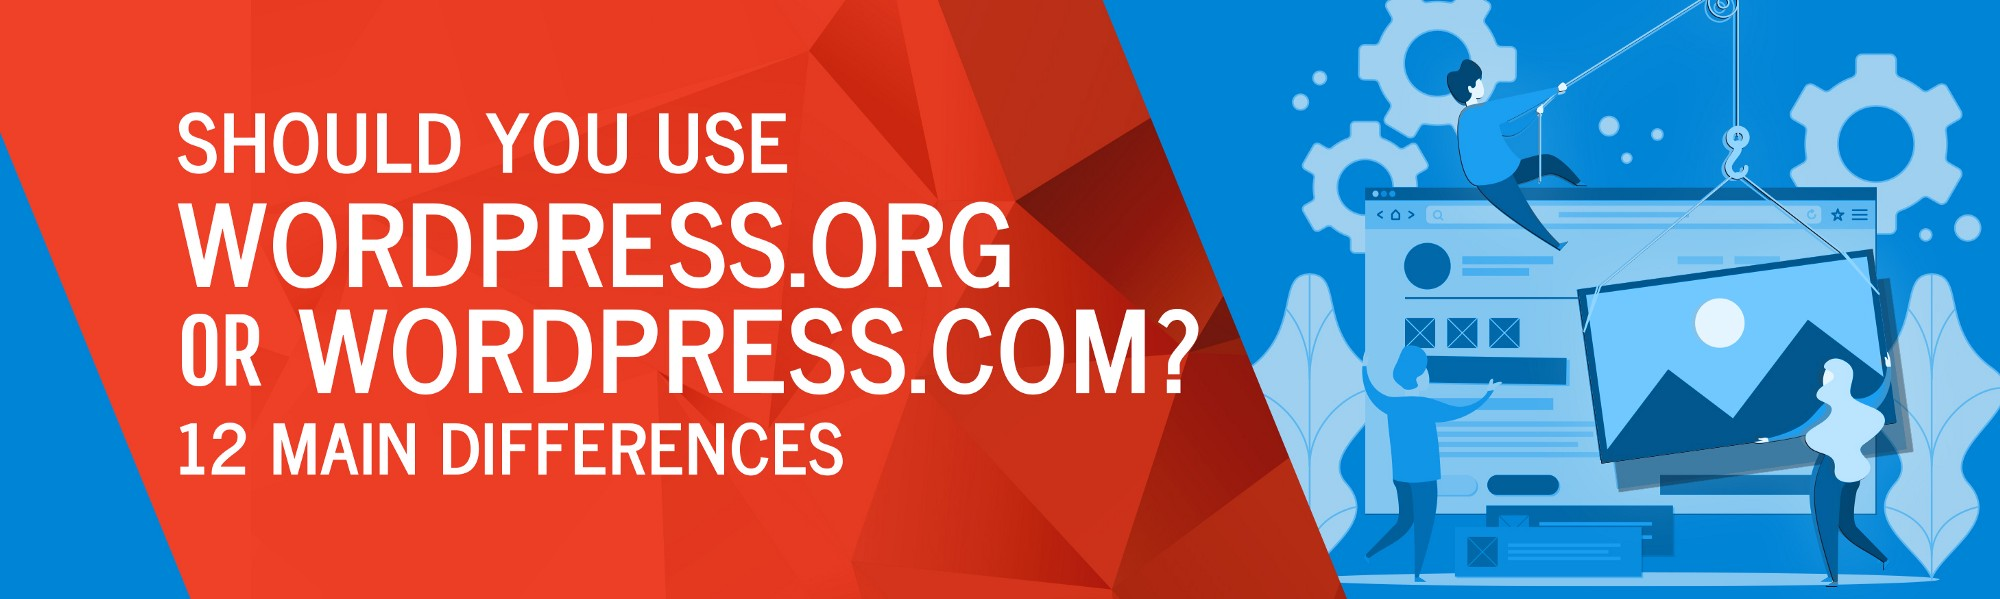 Should You Use WordPress.org or WordPress.com? 12 Main Differences